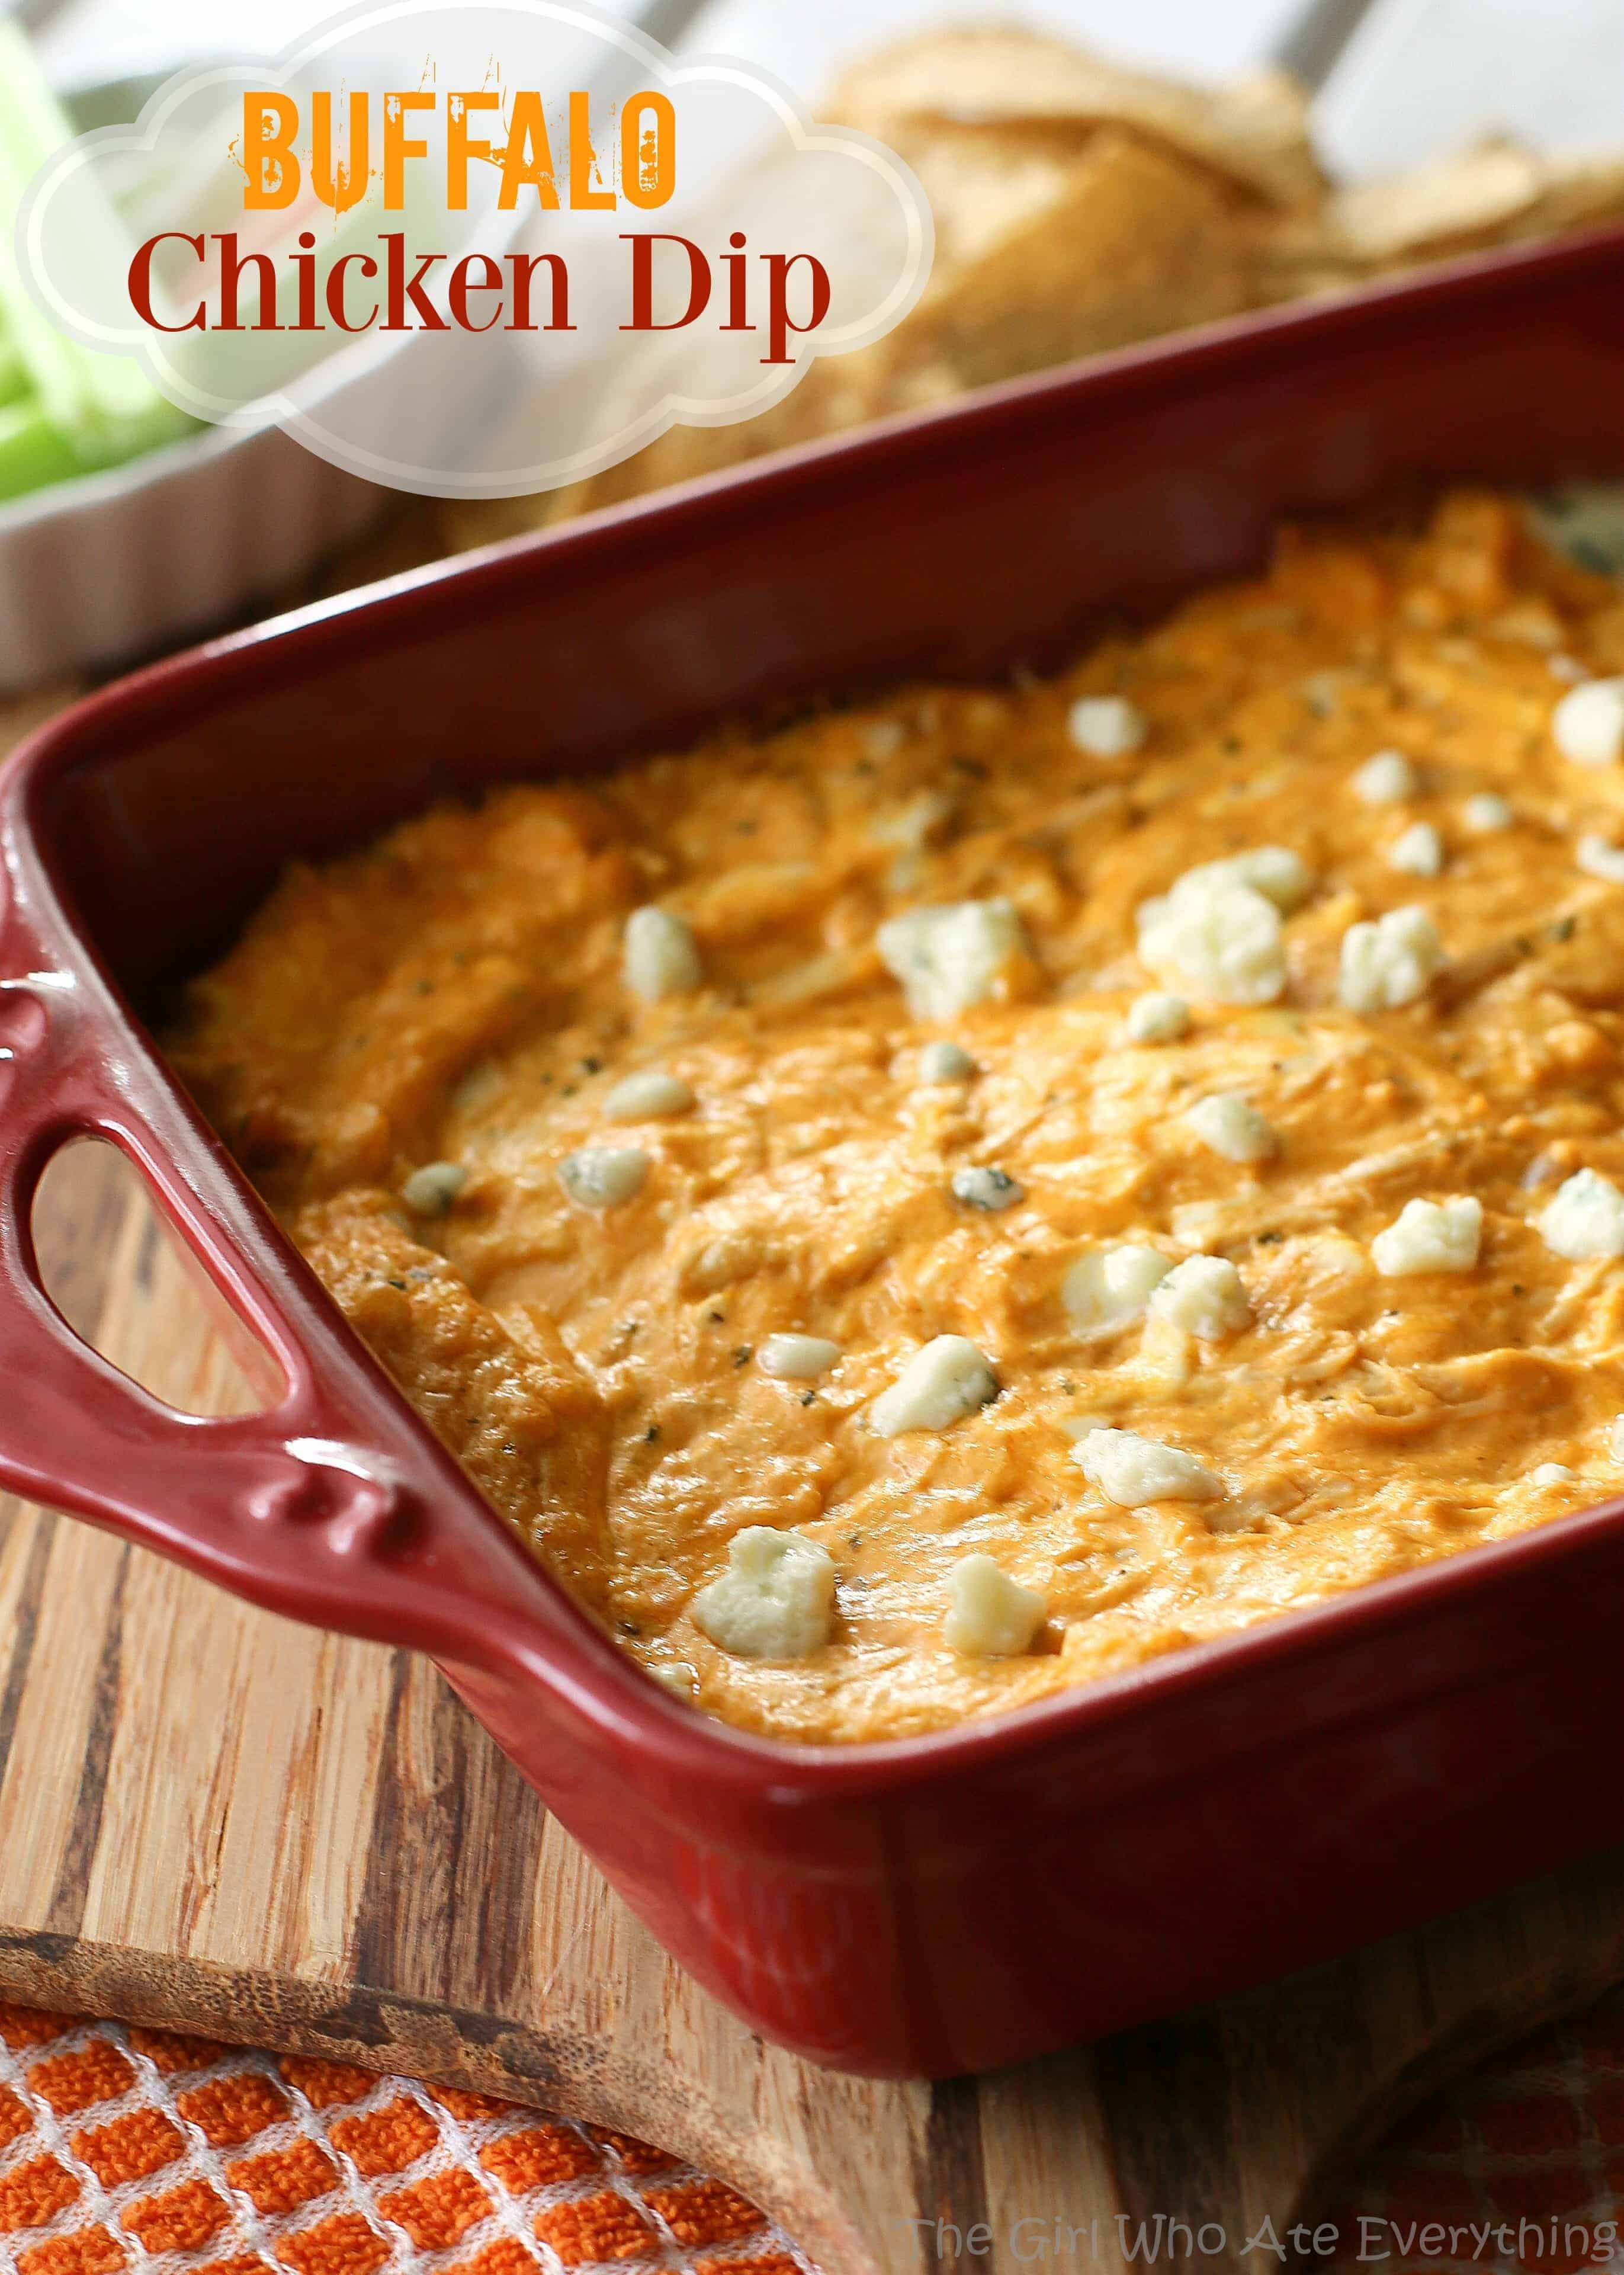 Buffalo Chicken Dip The Girl Who Ate Everything